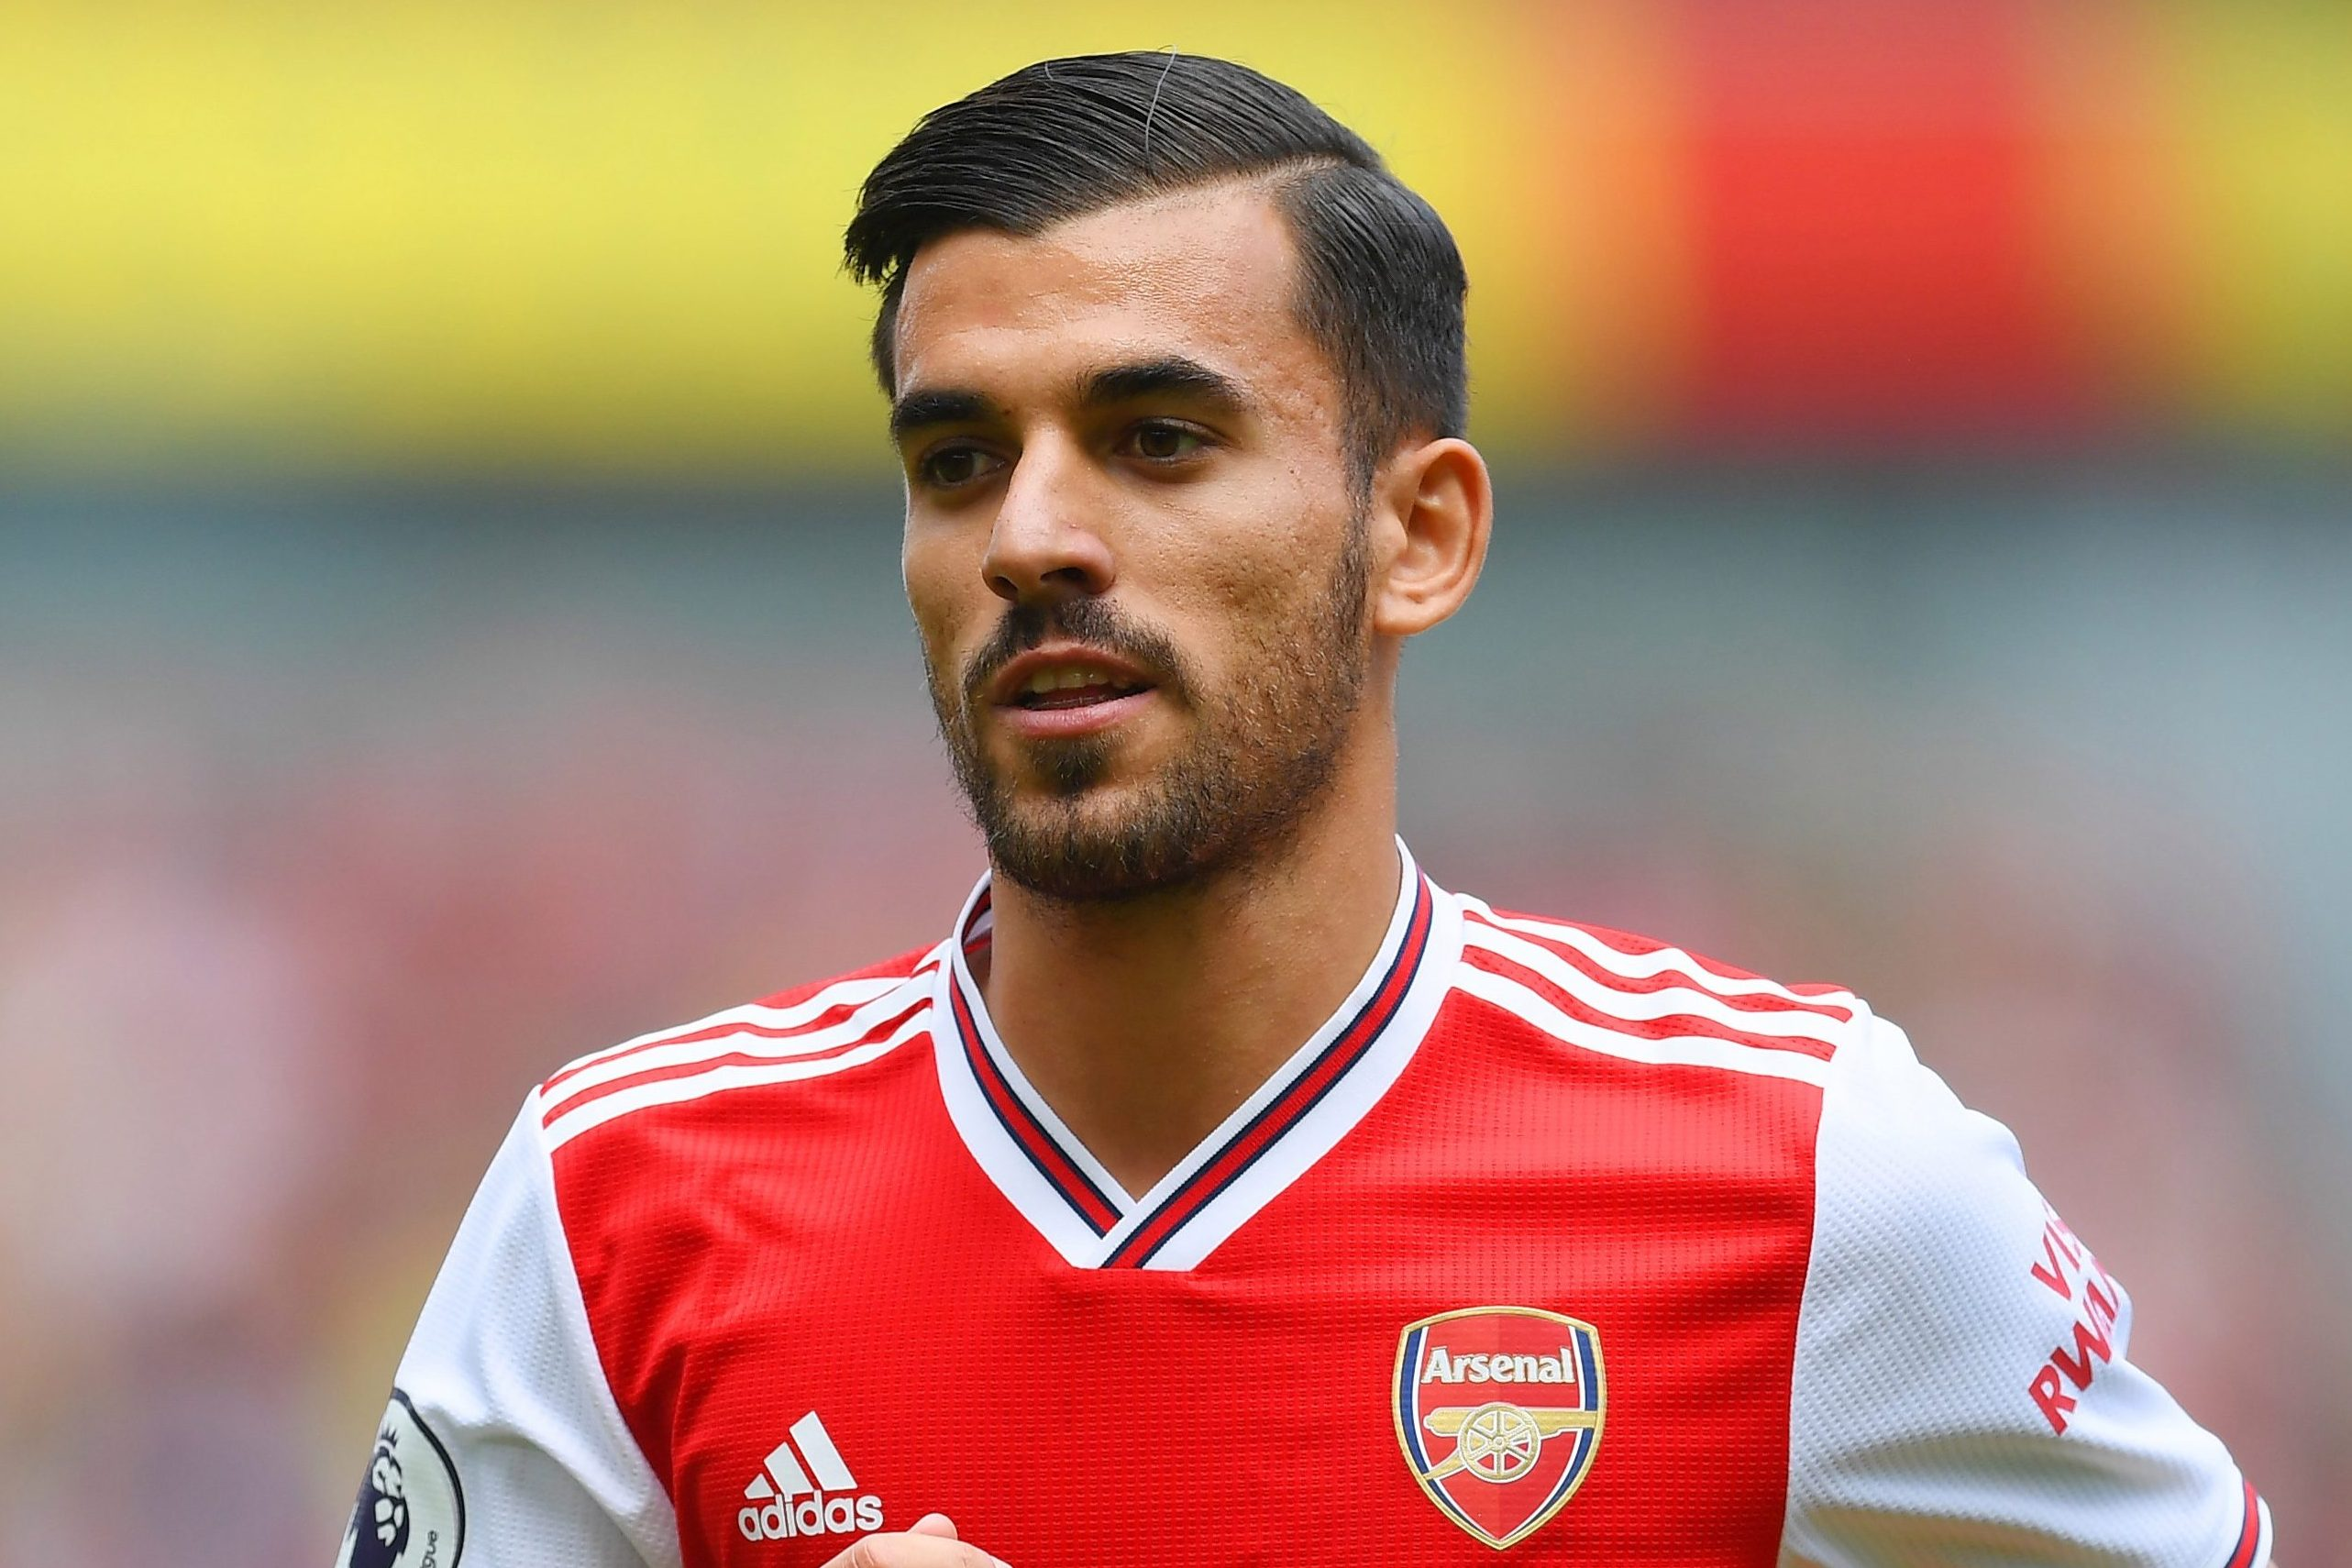 Arsenal star Dani Ceballos says man-of-the-match debut against Burnley was 'one of most special days of my life'